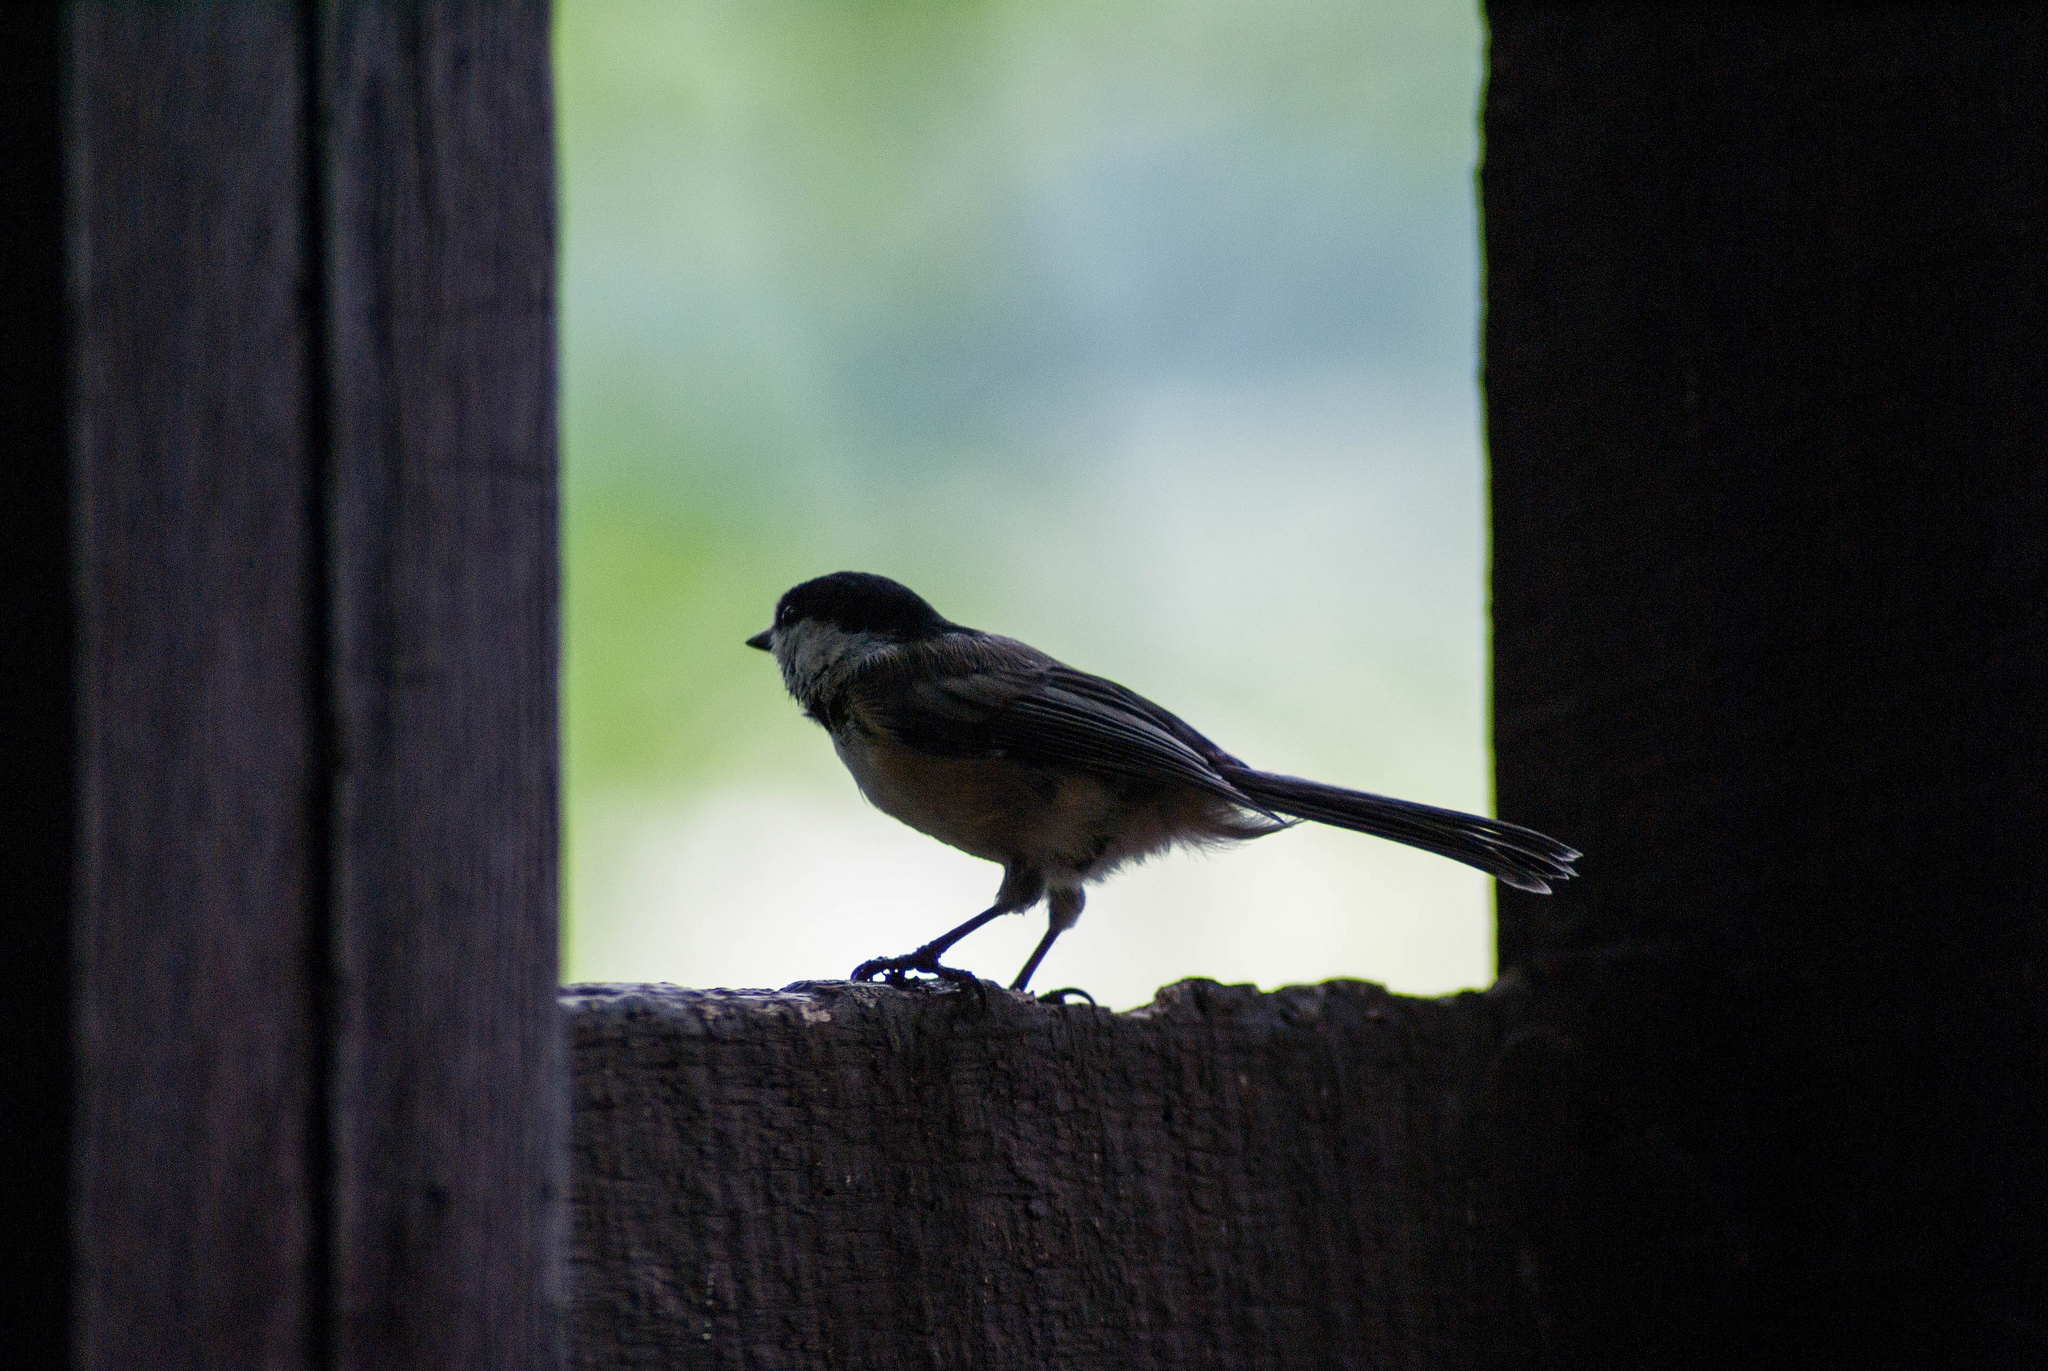 Small bird sits on wooden ledge